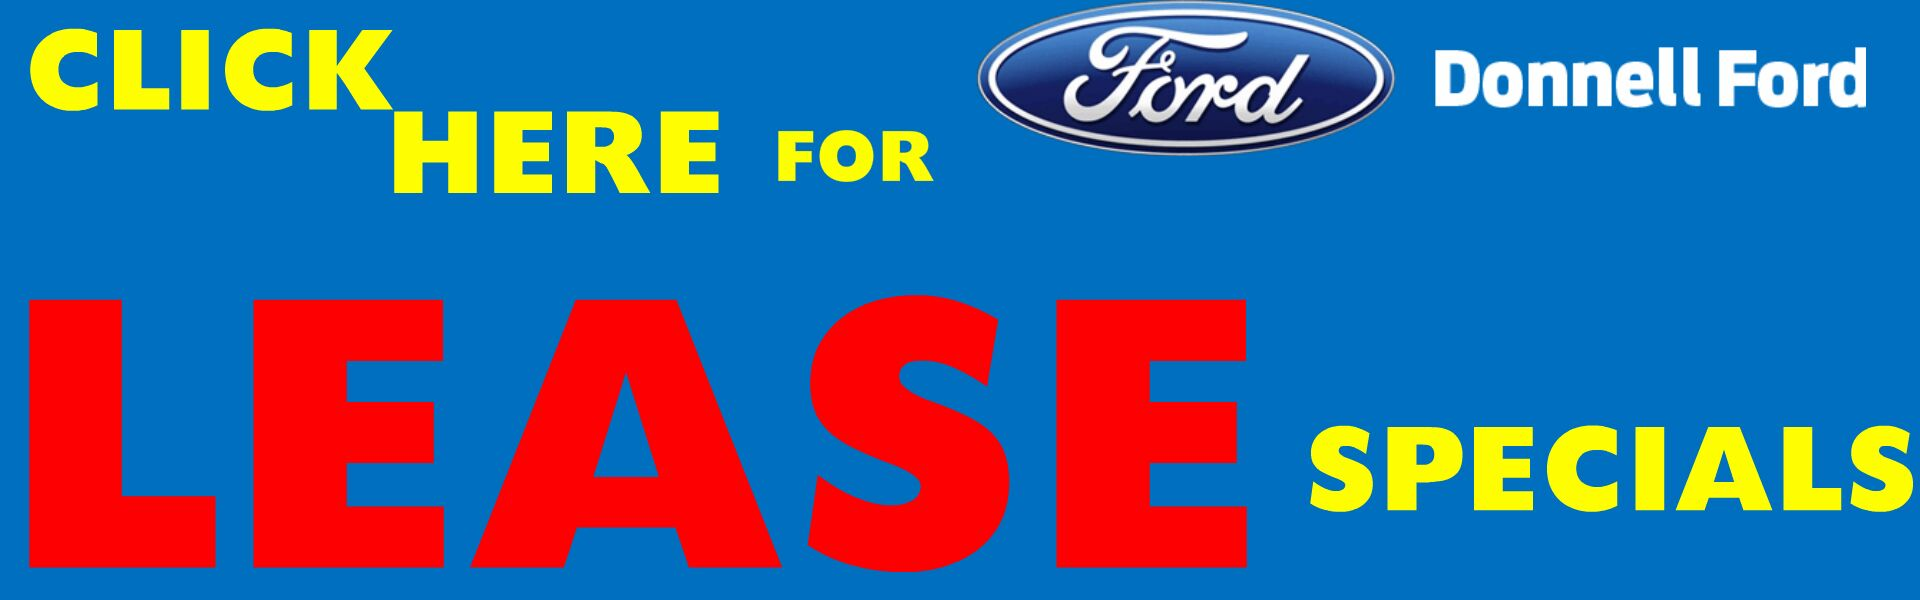 Donnell Ford Lease Specials Banner